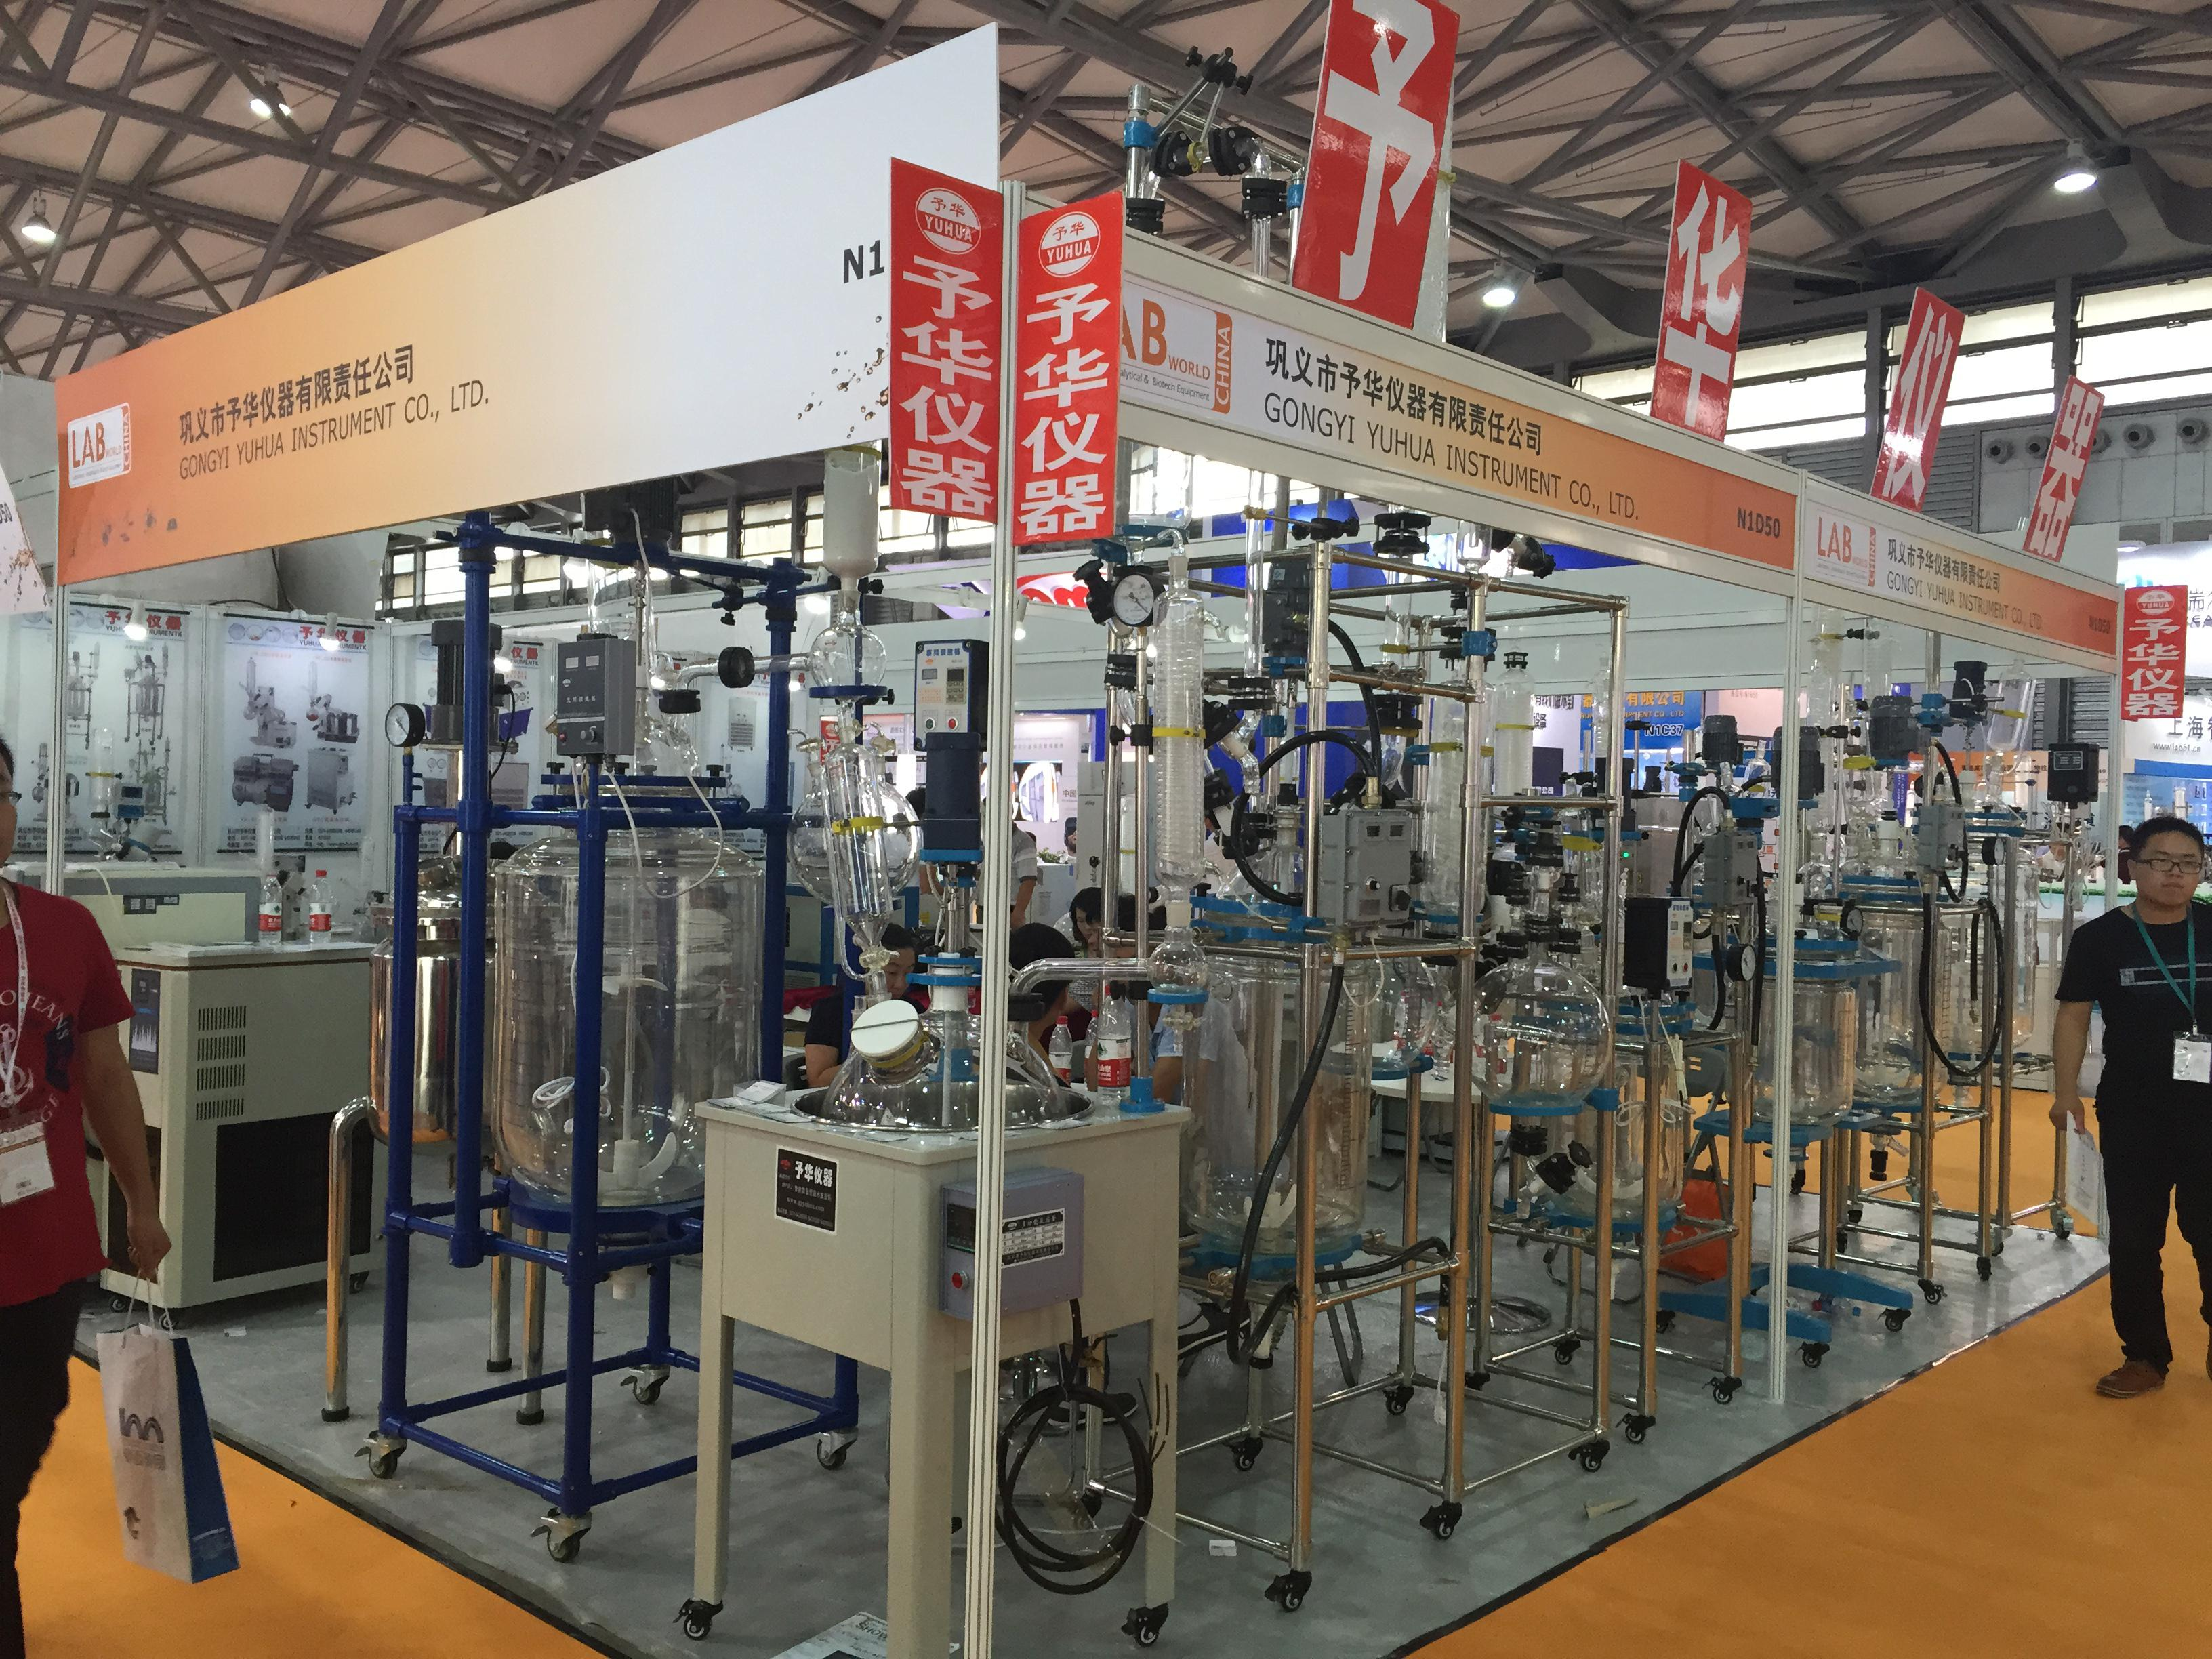 Our company will in November 2015 10-12 participate in Nanjing on the pharmaceutical raw materials will be!